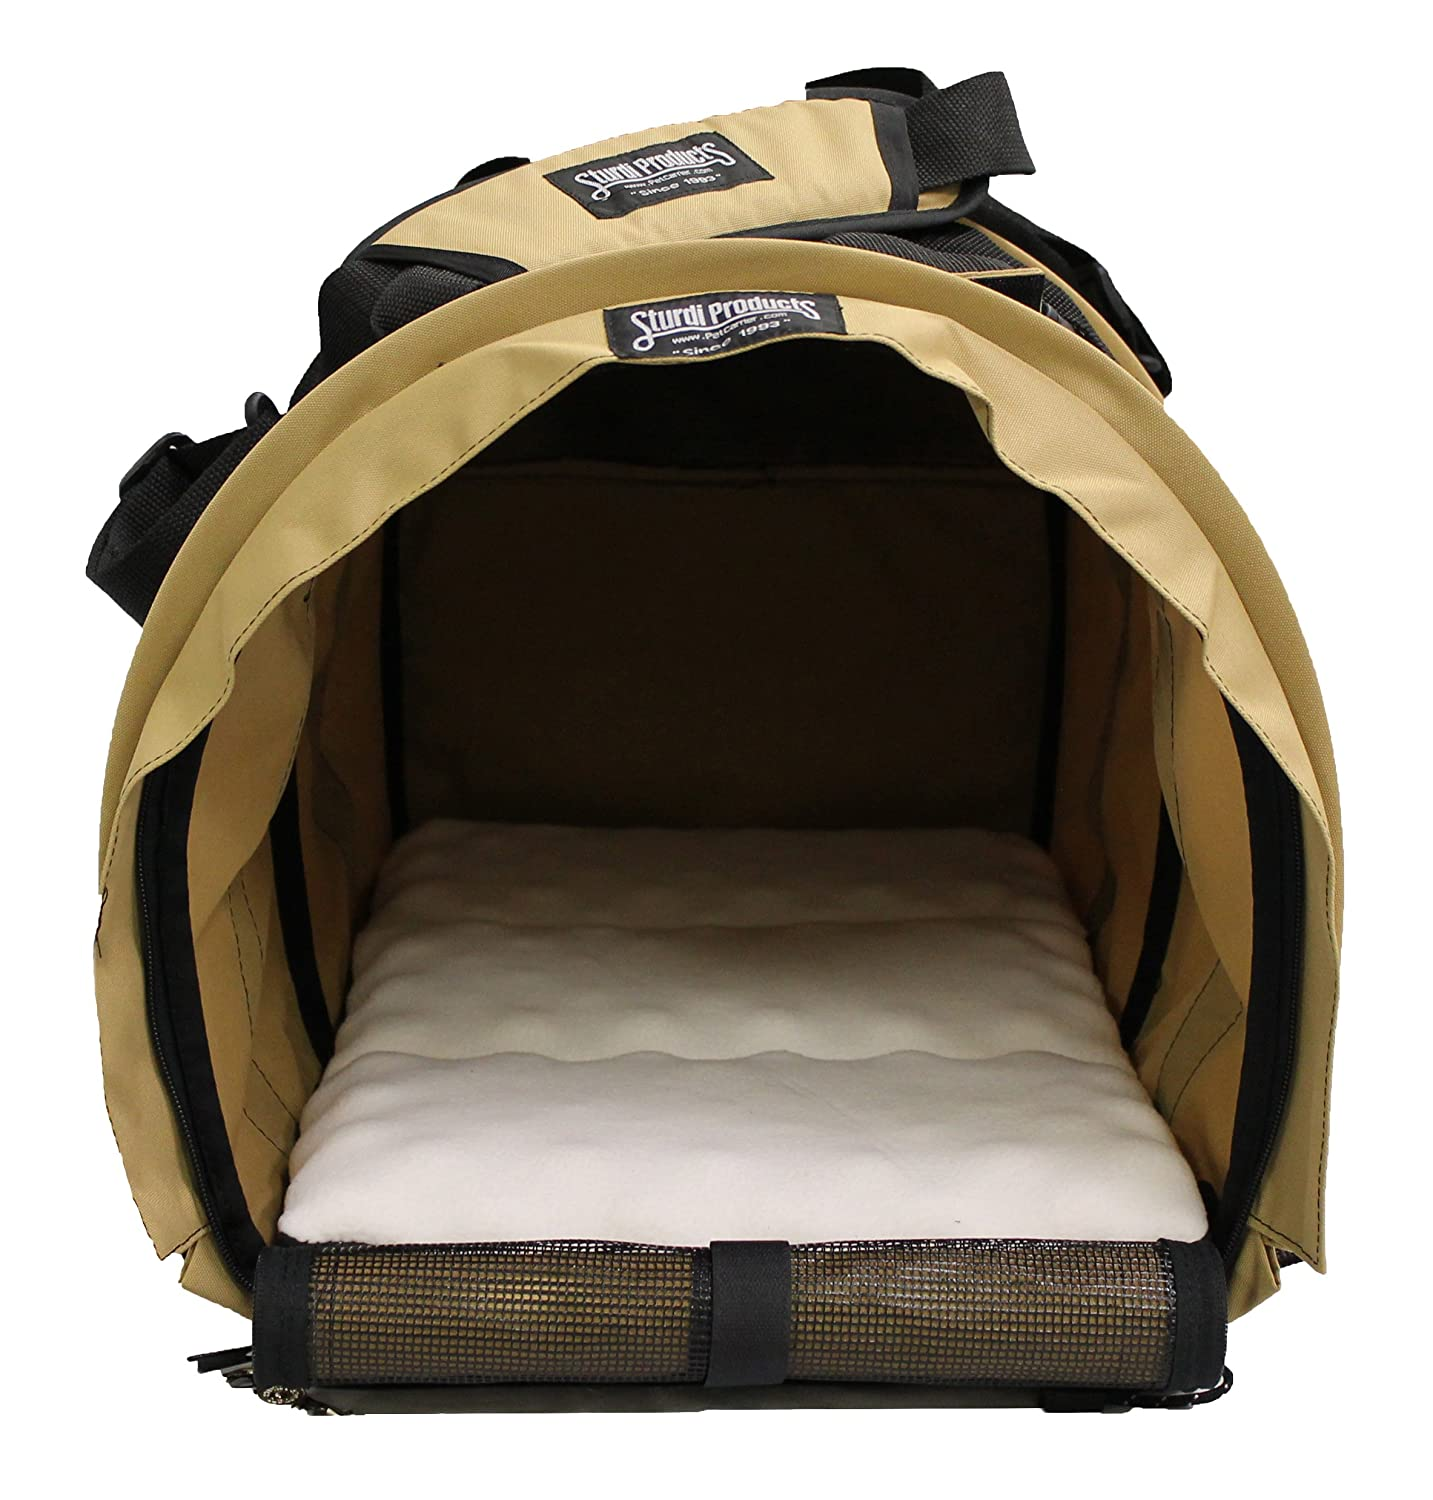 Sturdi Products SturdiBag X-Large Pet Carrier, Smoke SB3-SM